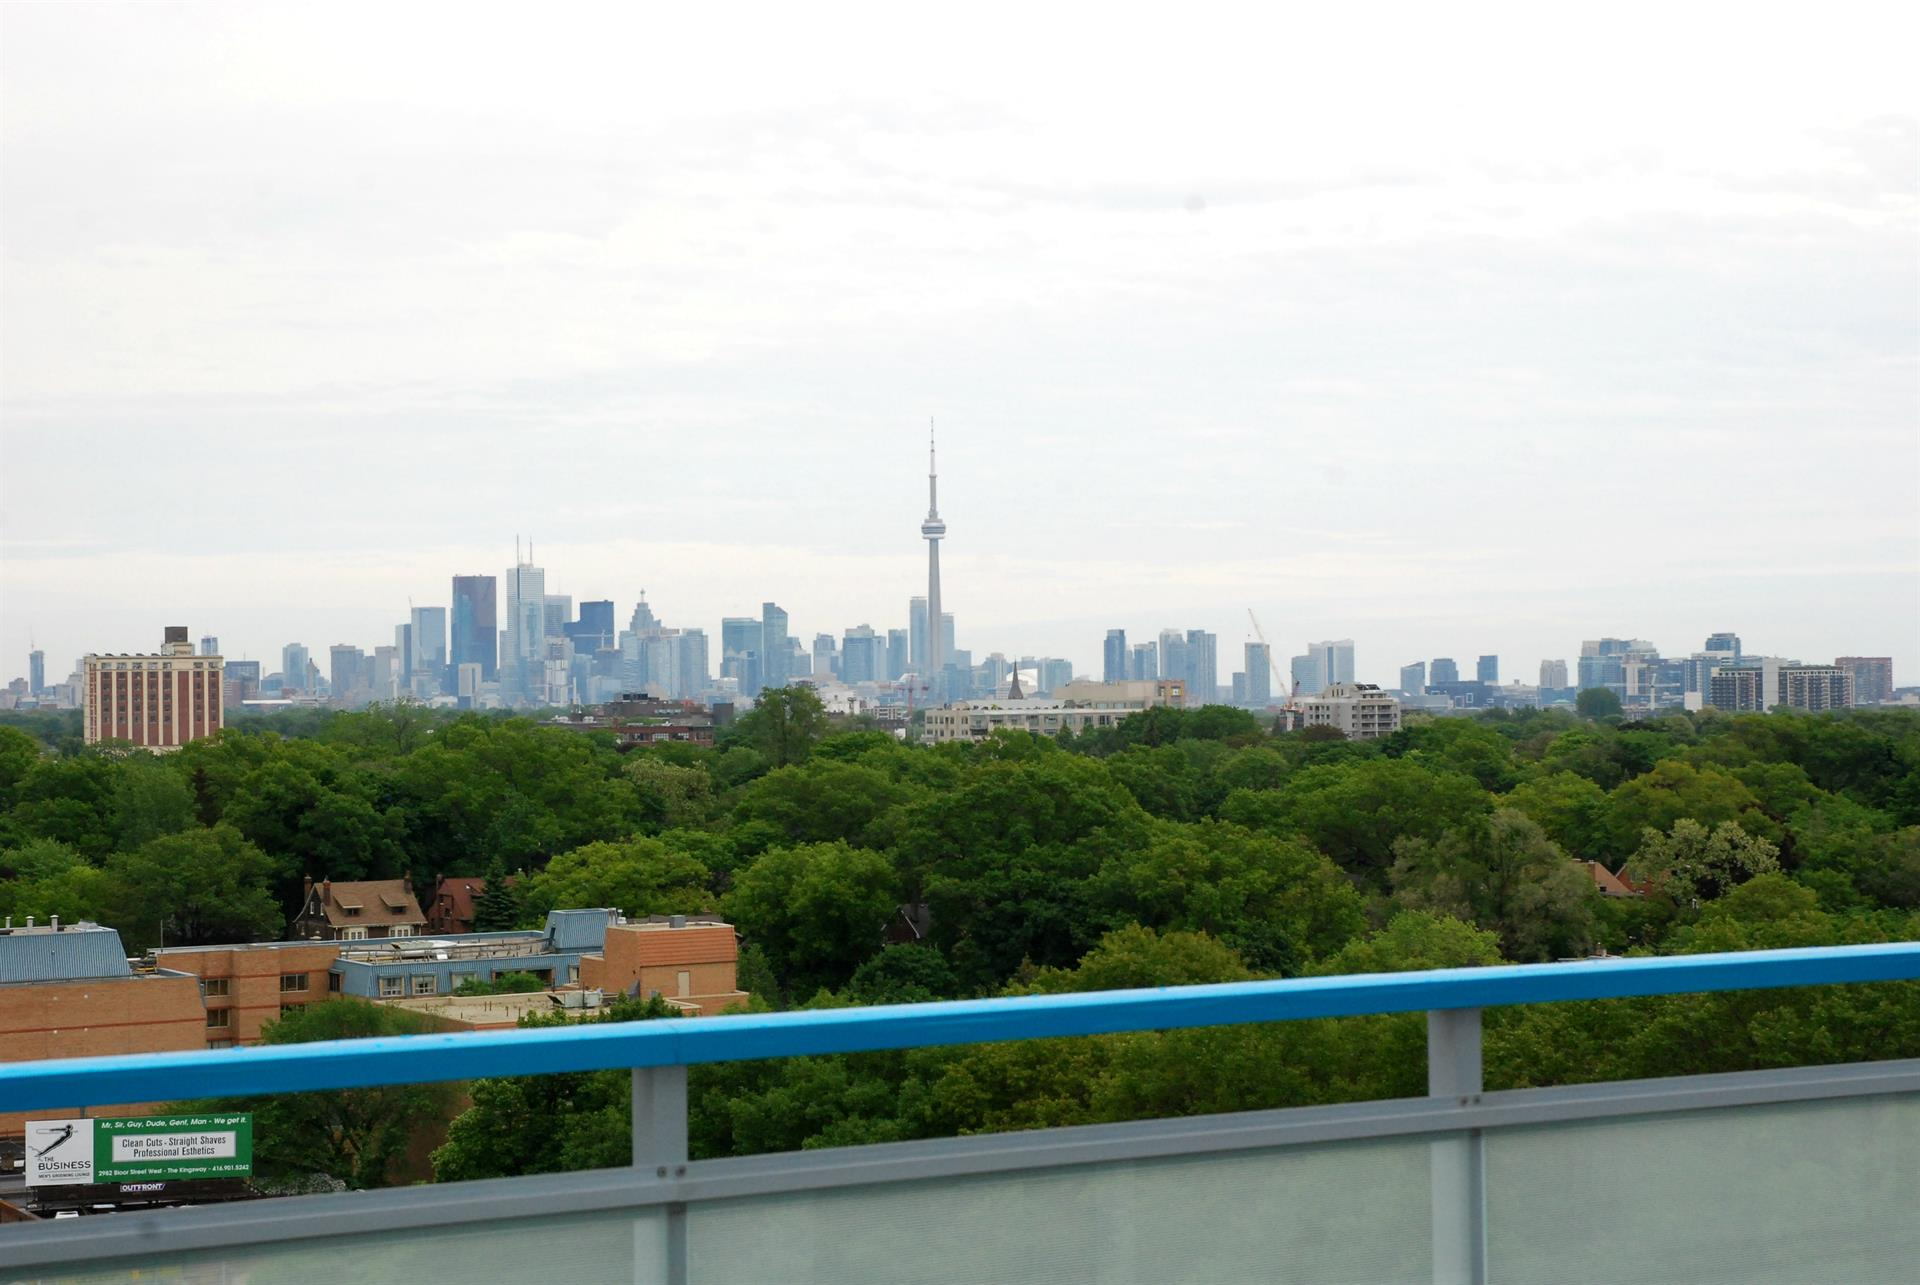 Are Condos in the GTA Going to Get Way More Expensive this Year? Image